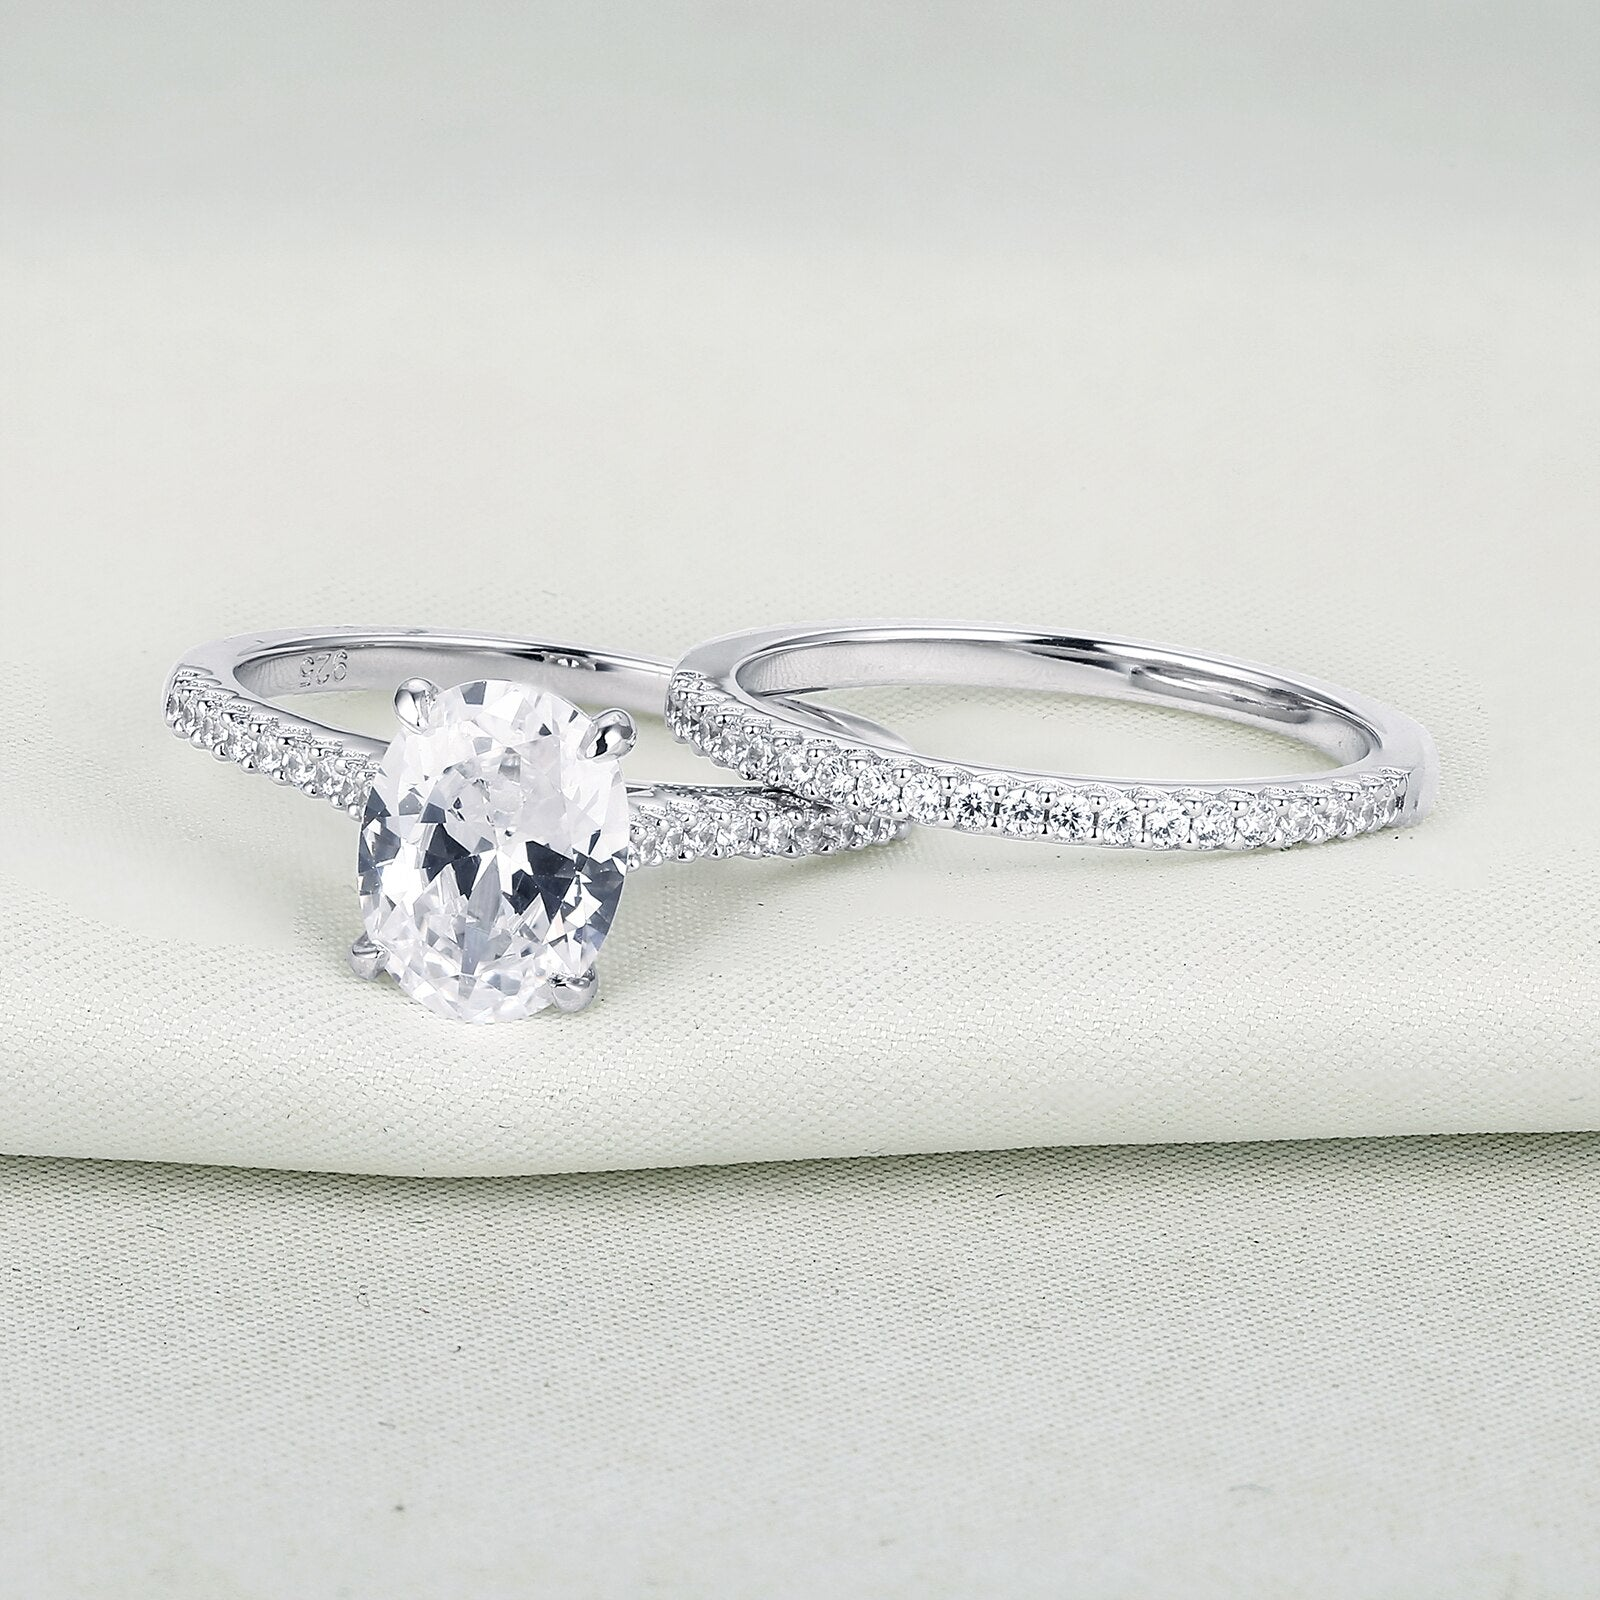 2pcs 925 Sterling Silver 1.9Ct Oval Cut Zircon Ring